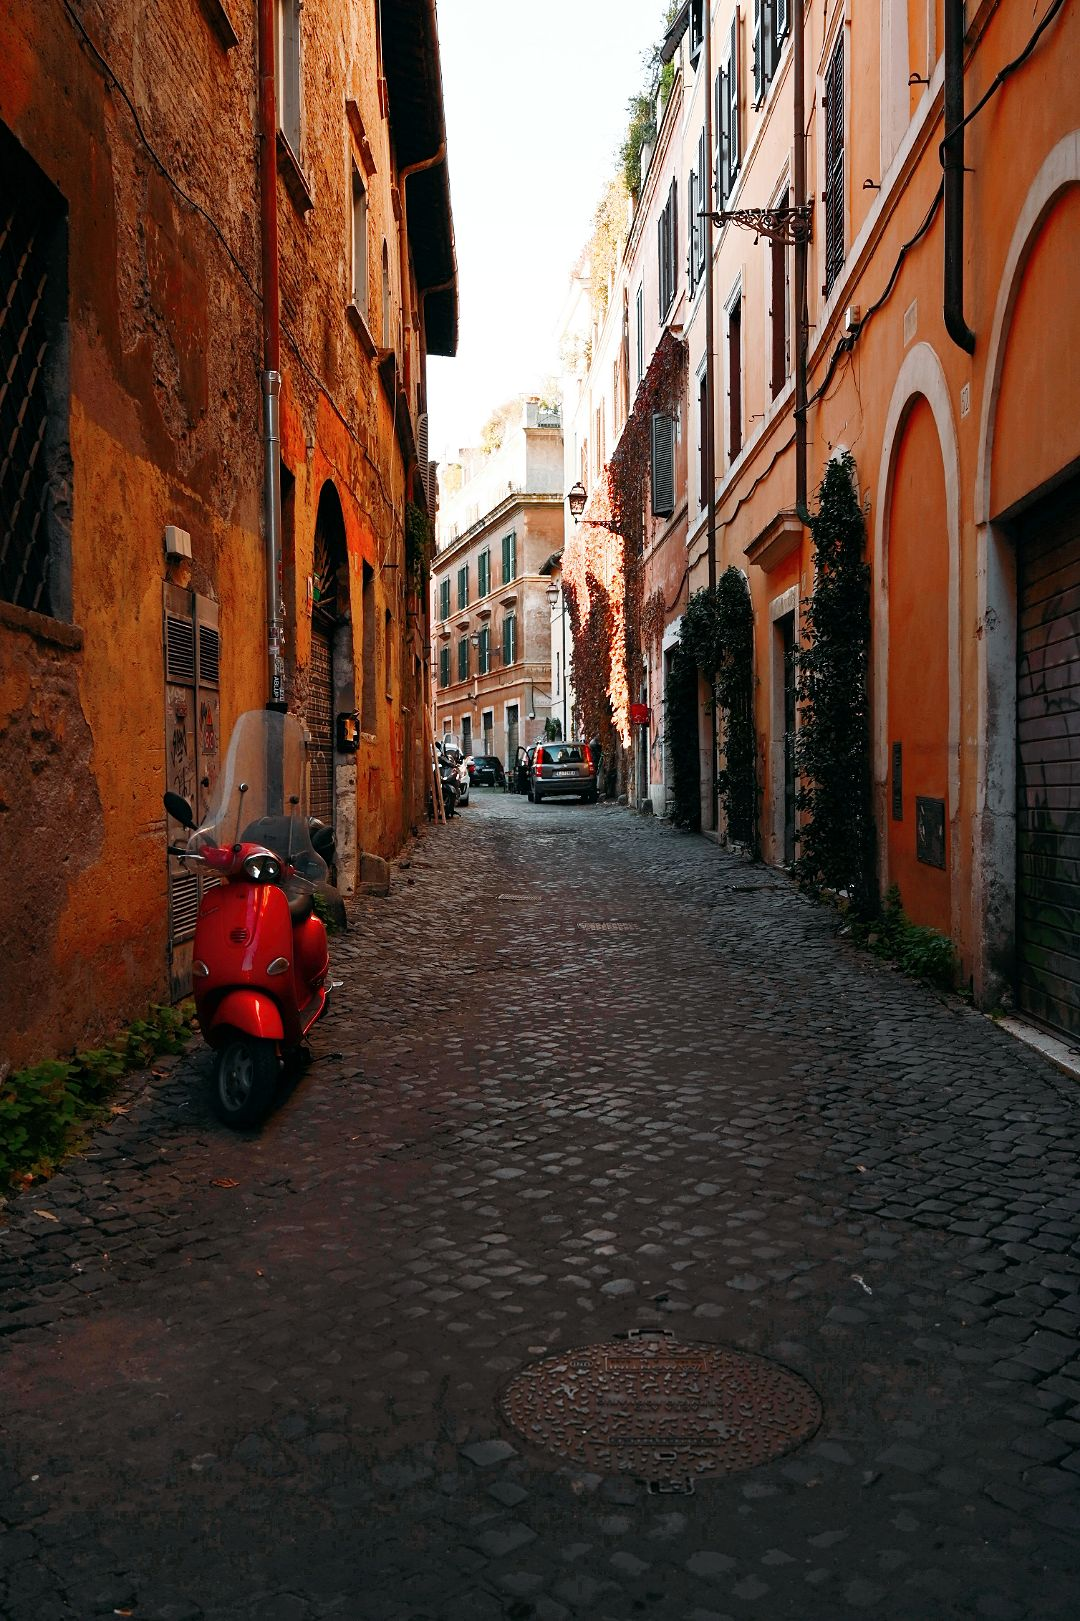 Red scooter in Trastevere neighbourhood in Rome Italy